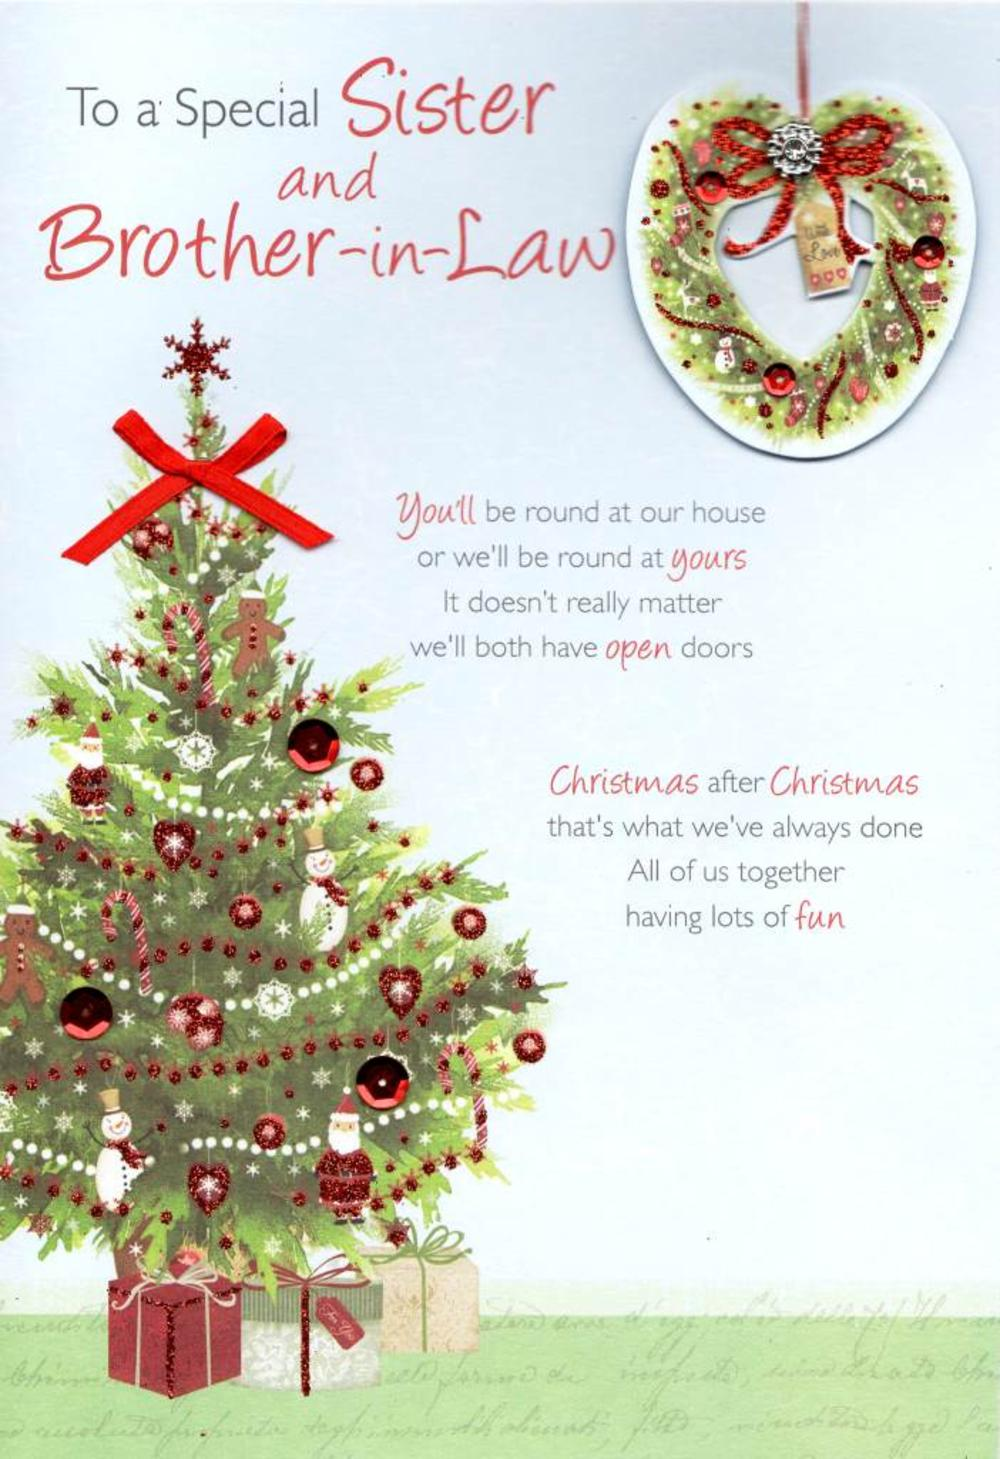 Wedding Gifts For A Sister And Brother In Law : Special Sister & Brother-in-Law Christmas Greeting Card Cards Love ...